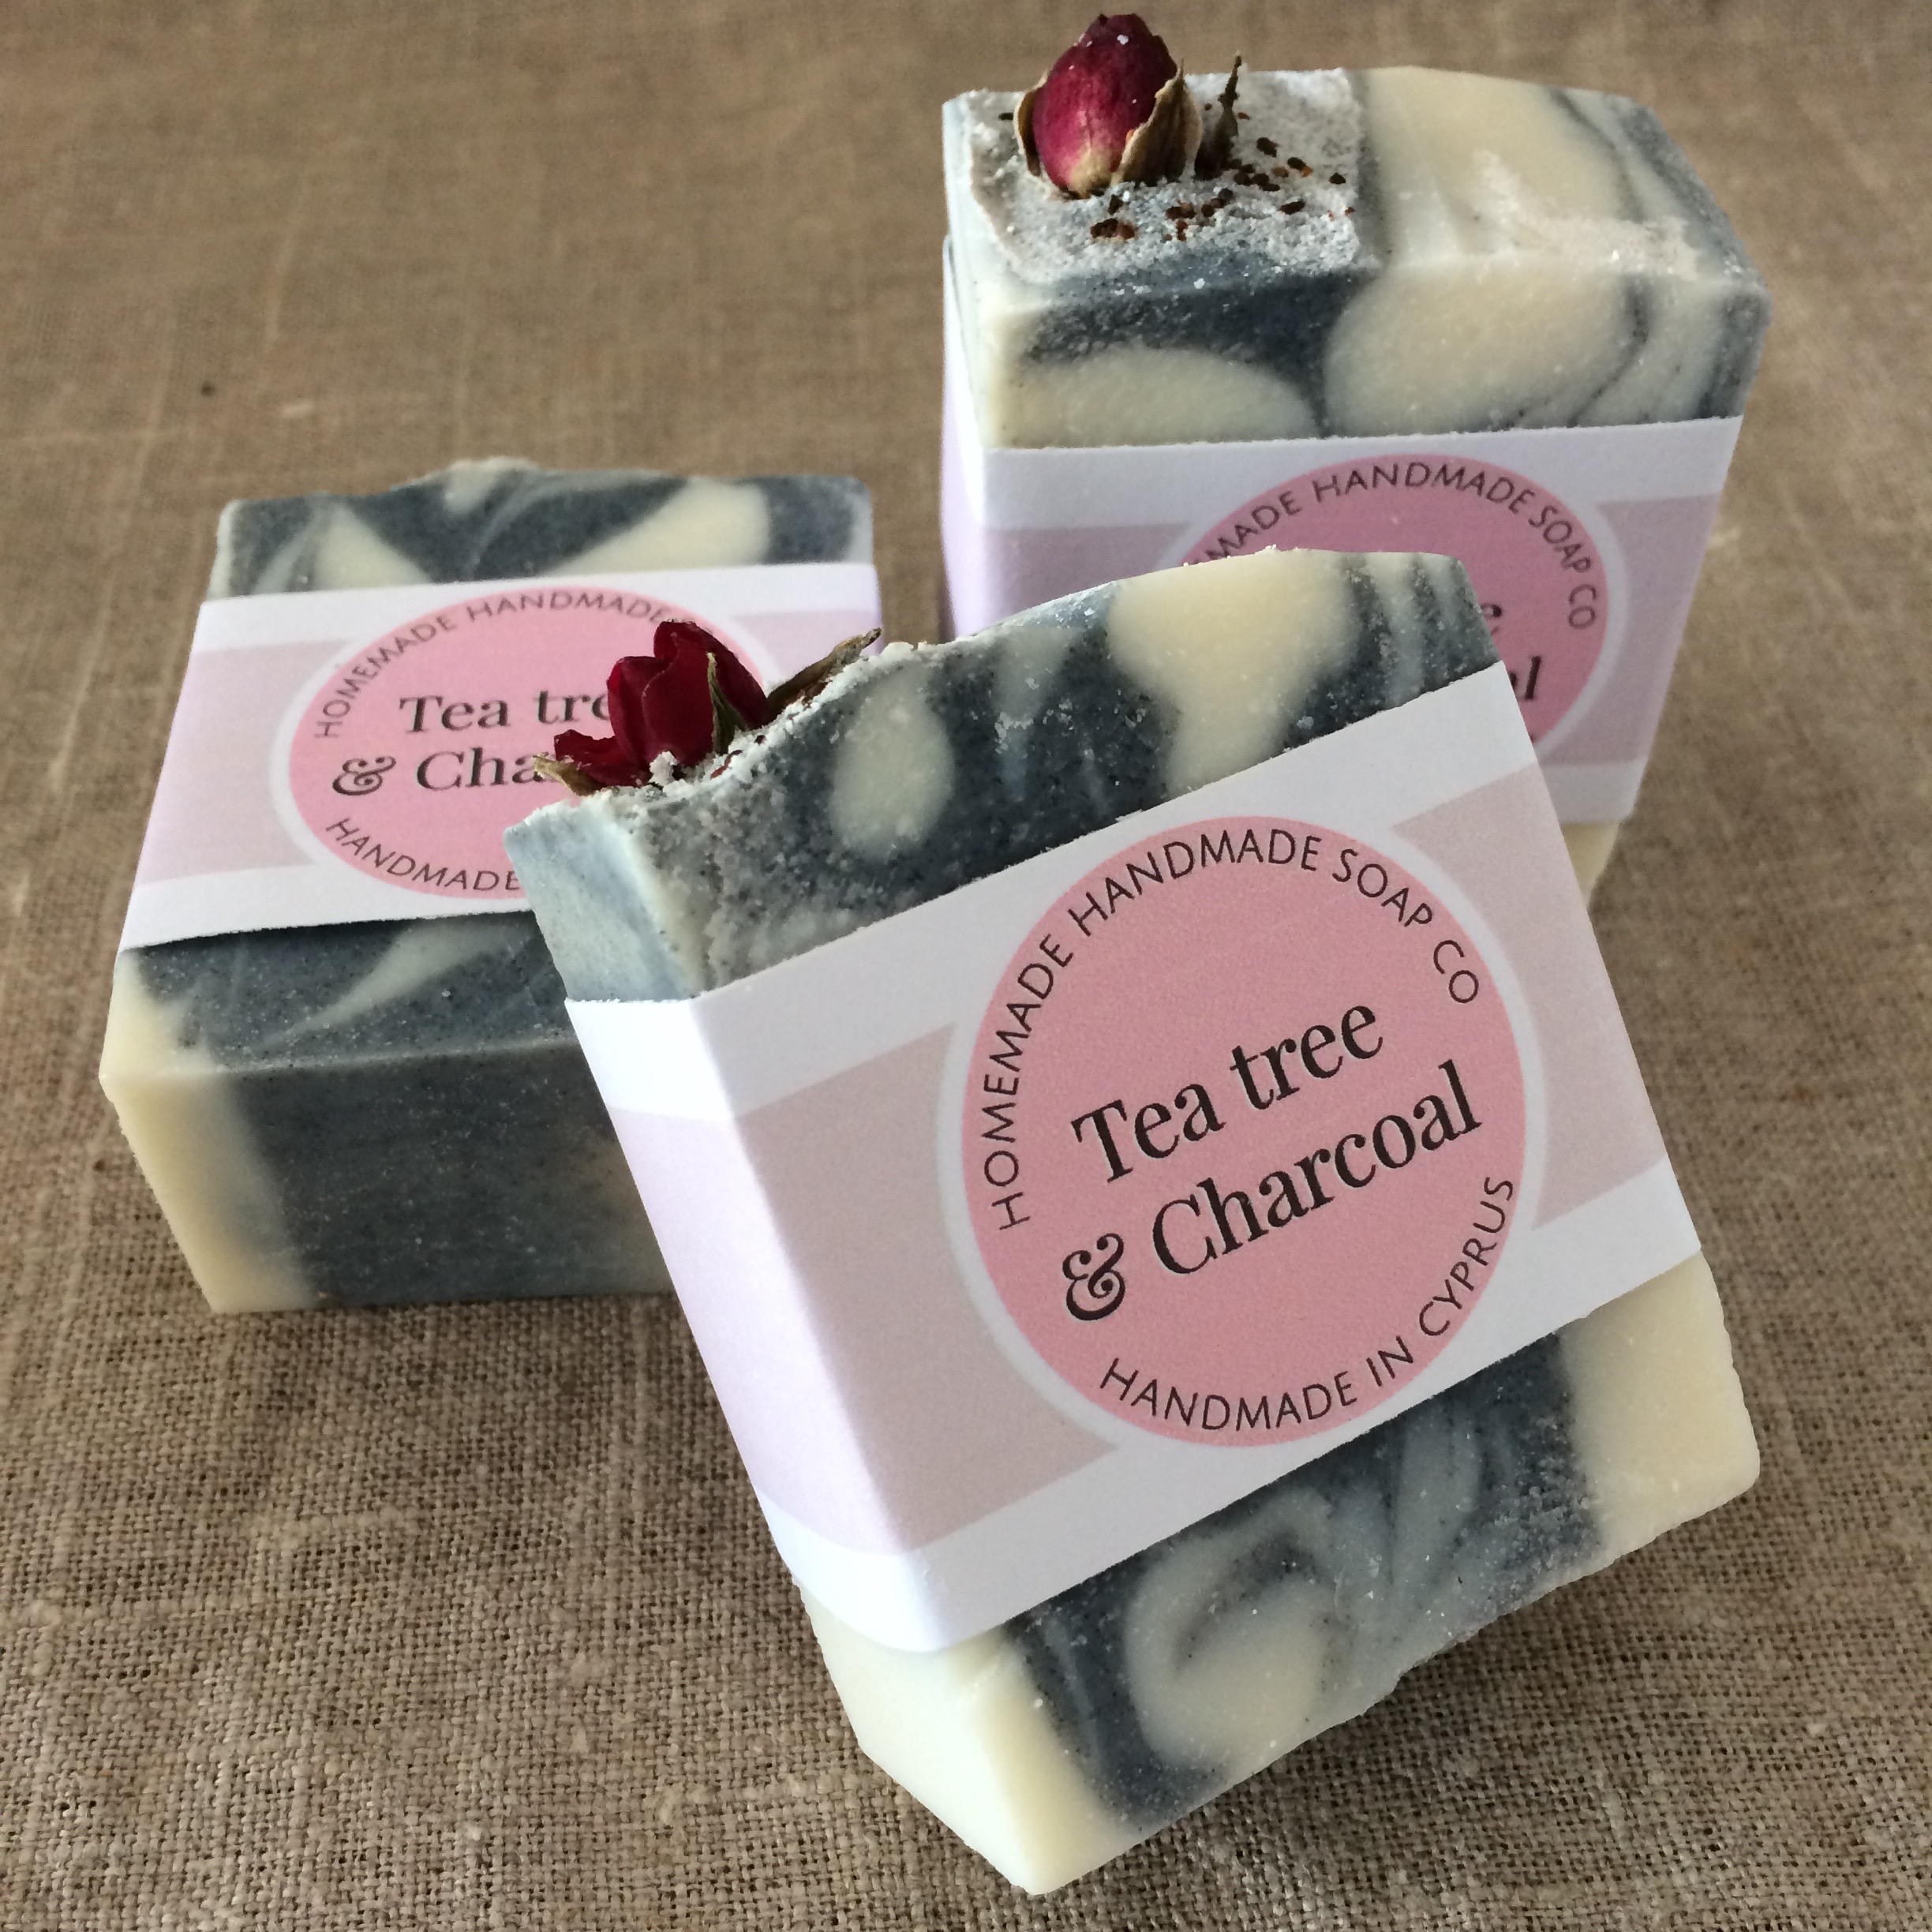 Tea tree & Charcoal soap